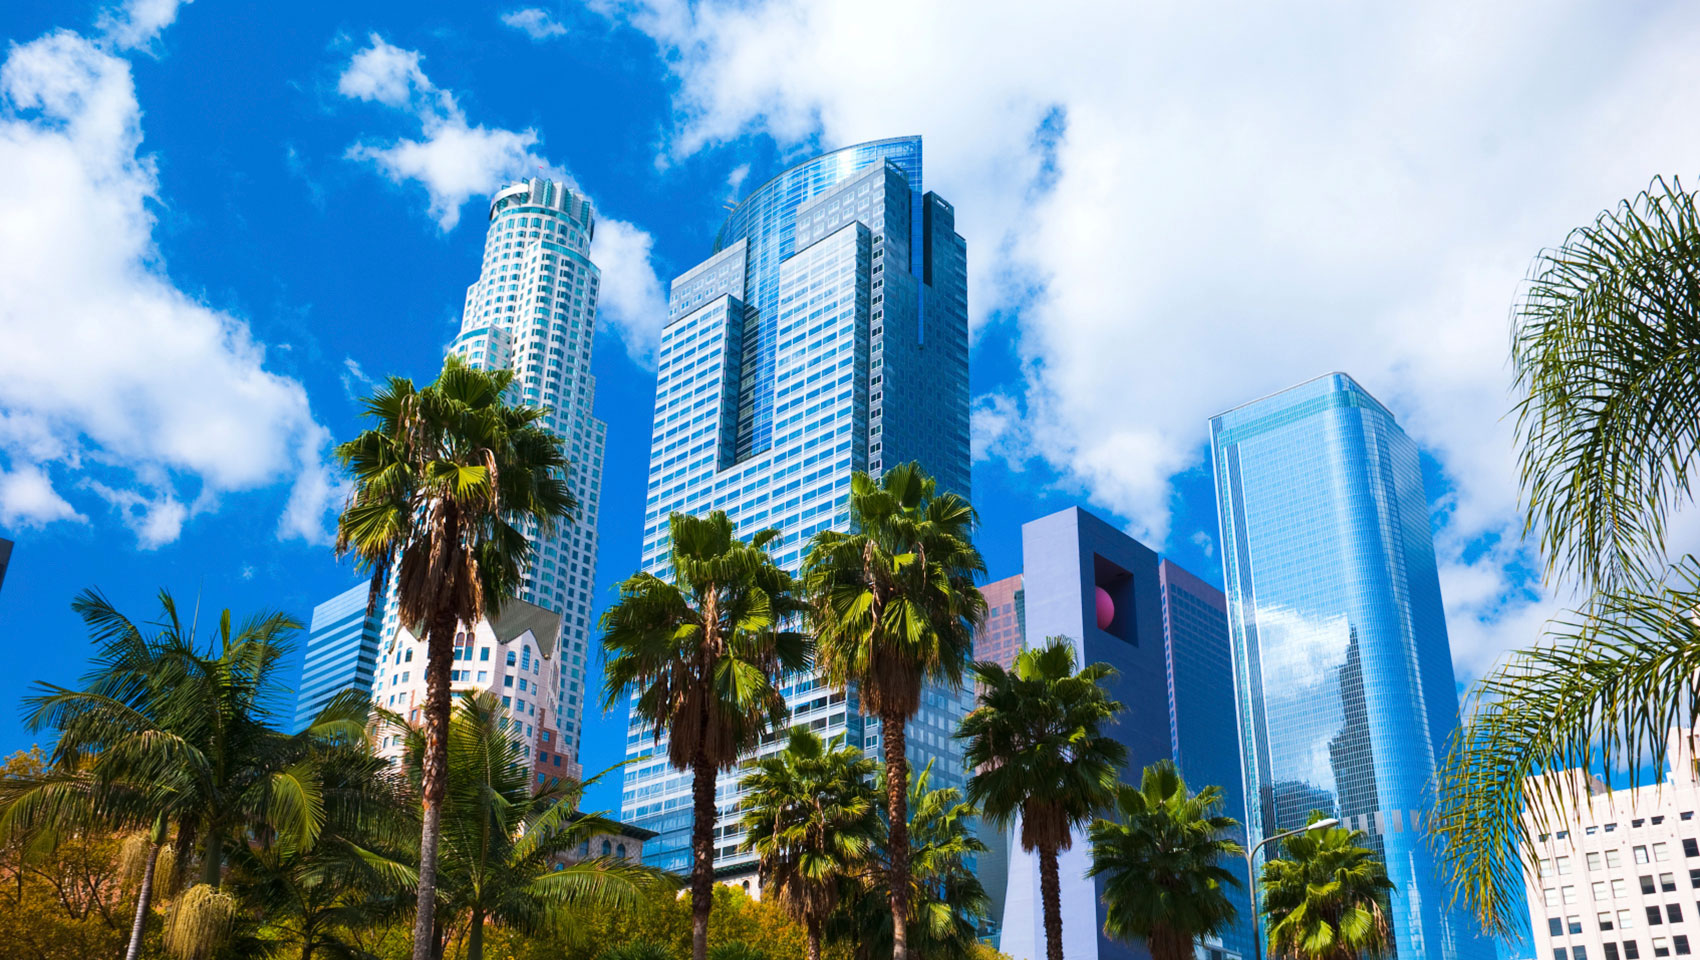 Downtown los angeles sky rise buildings